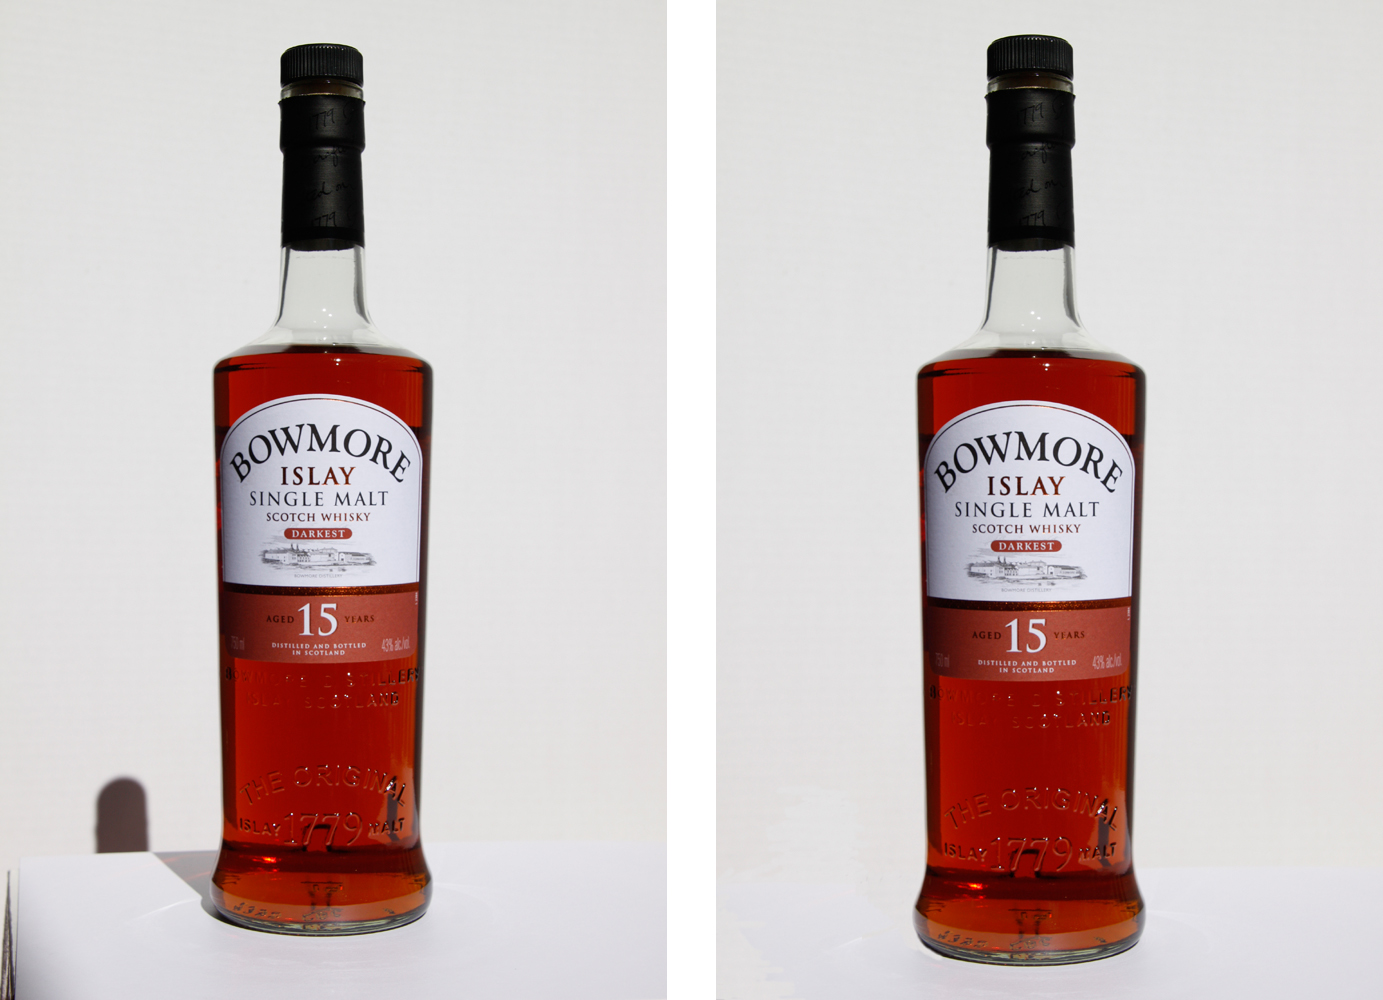 Bowmore Islay Scotch product photography